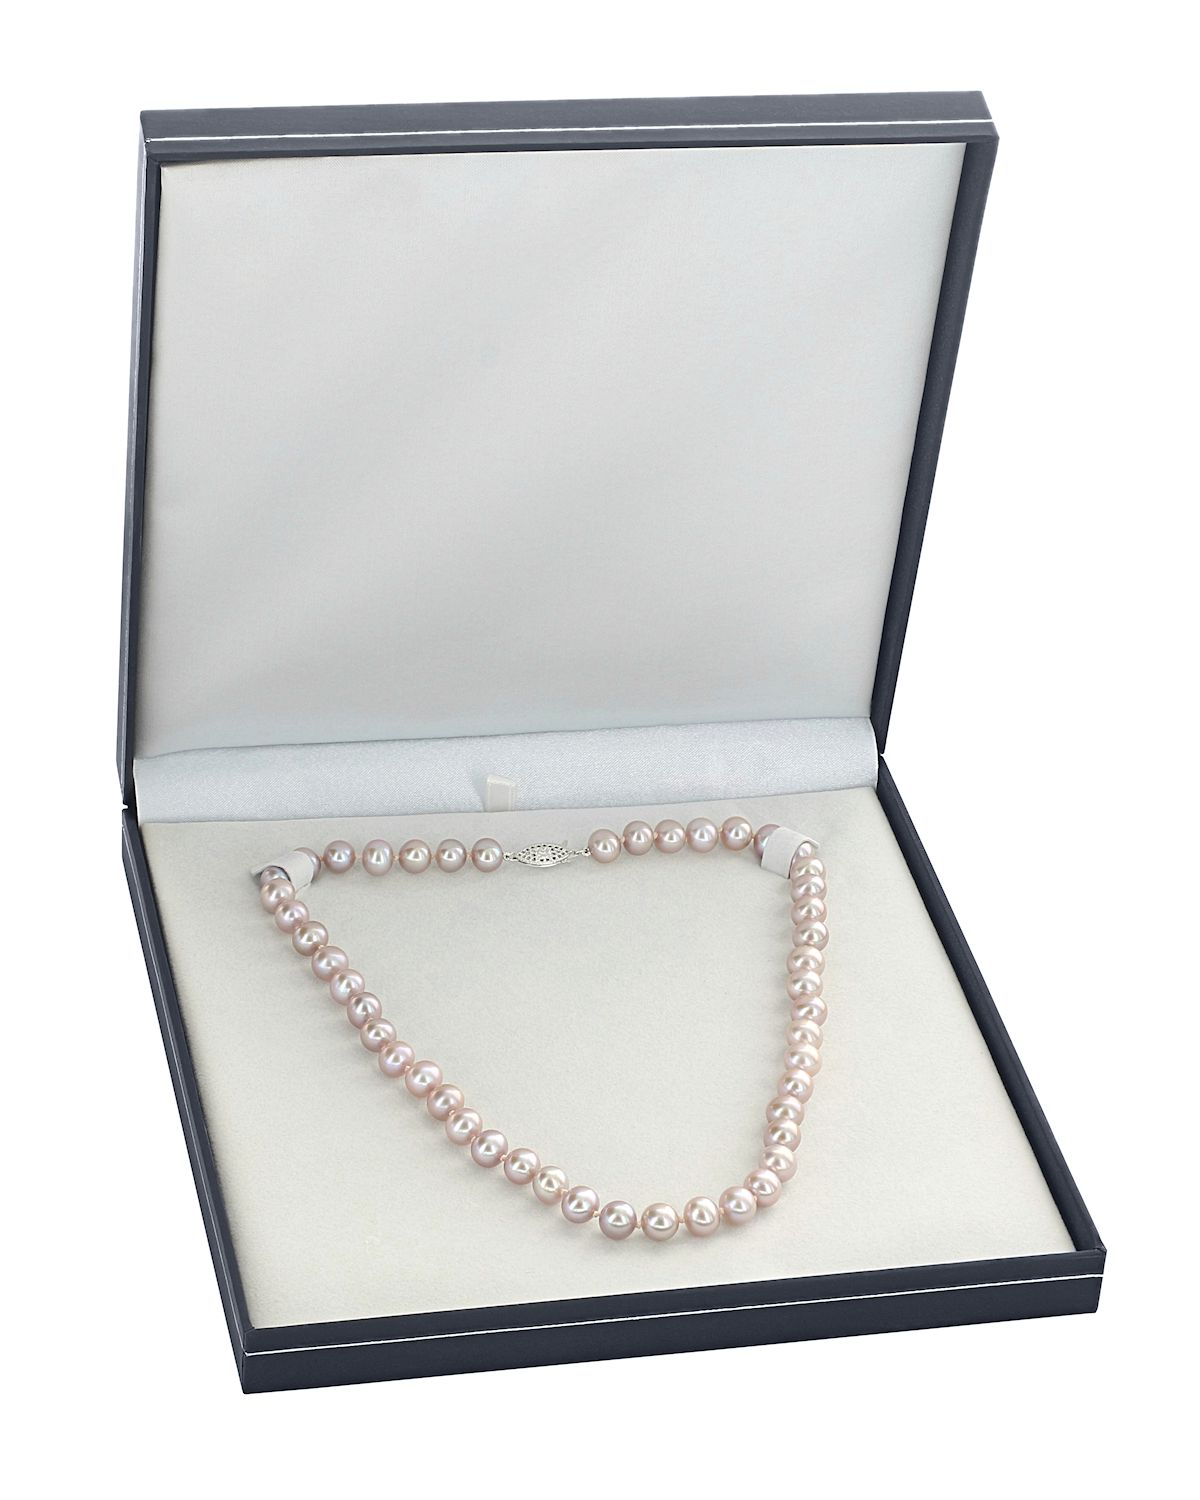 8-9mm Peach Freshwater Pearl Necklace - Third Image